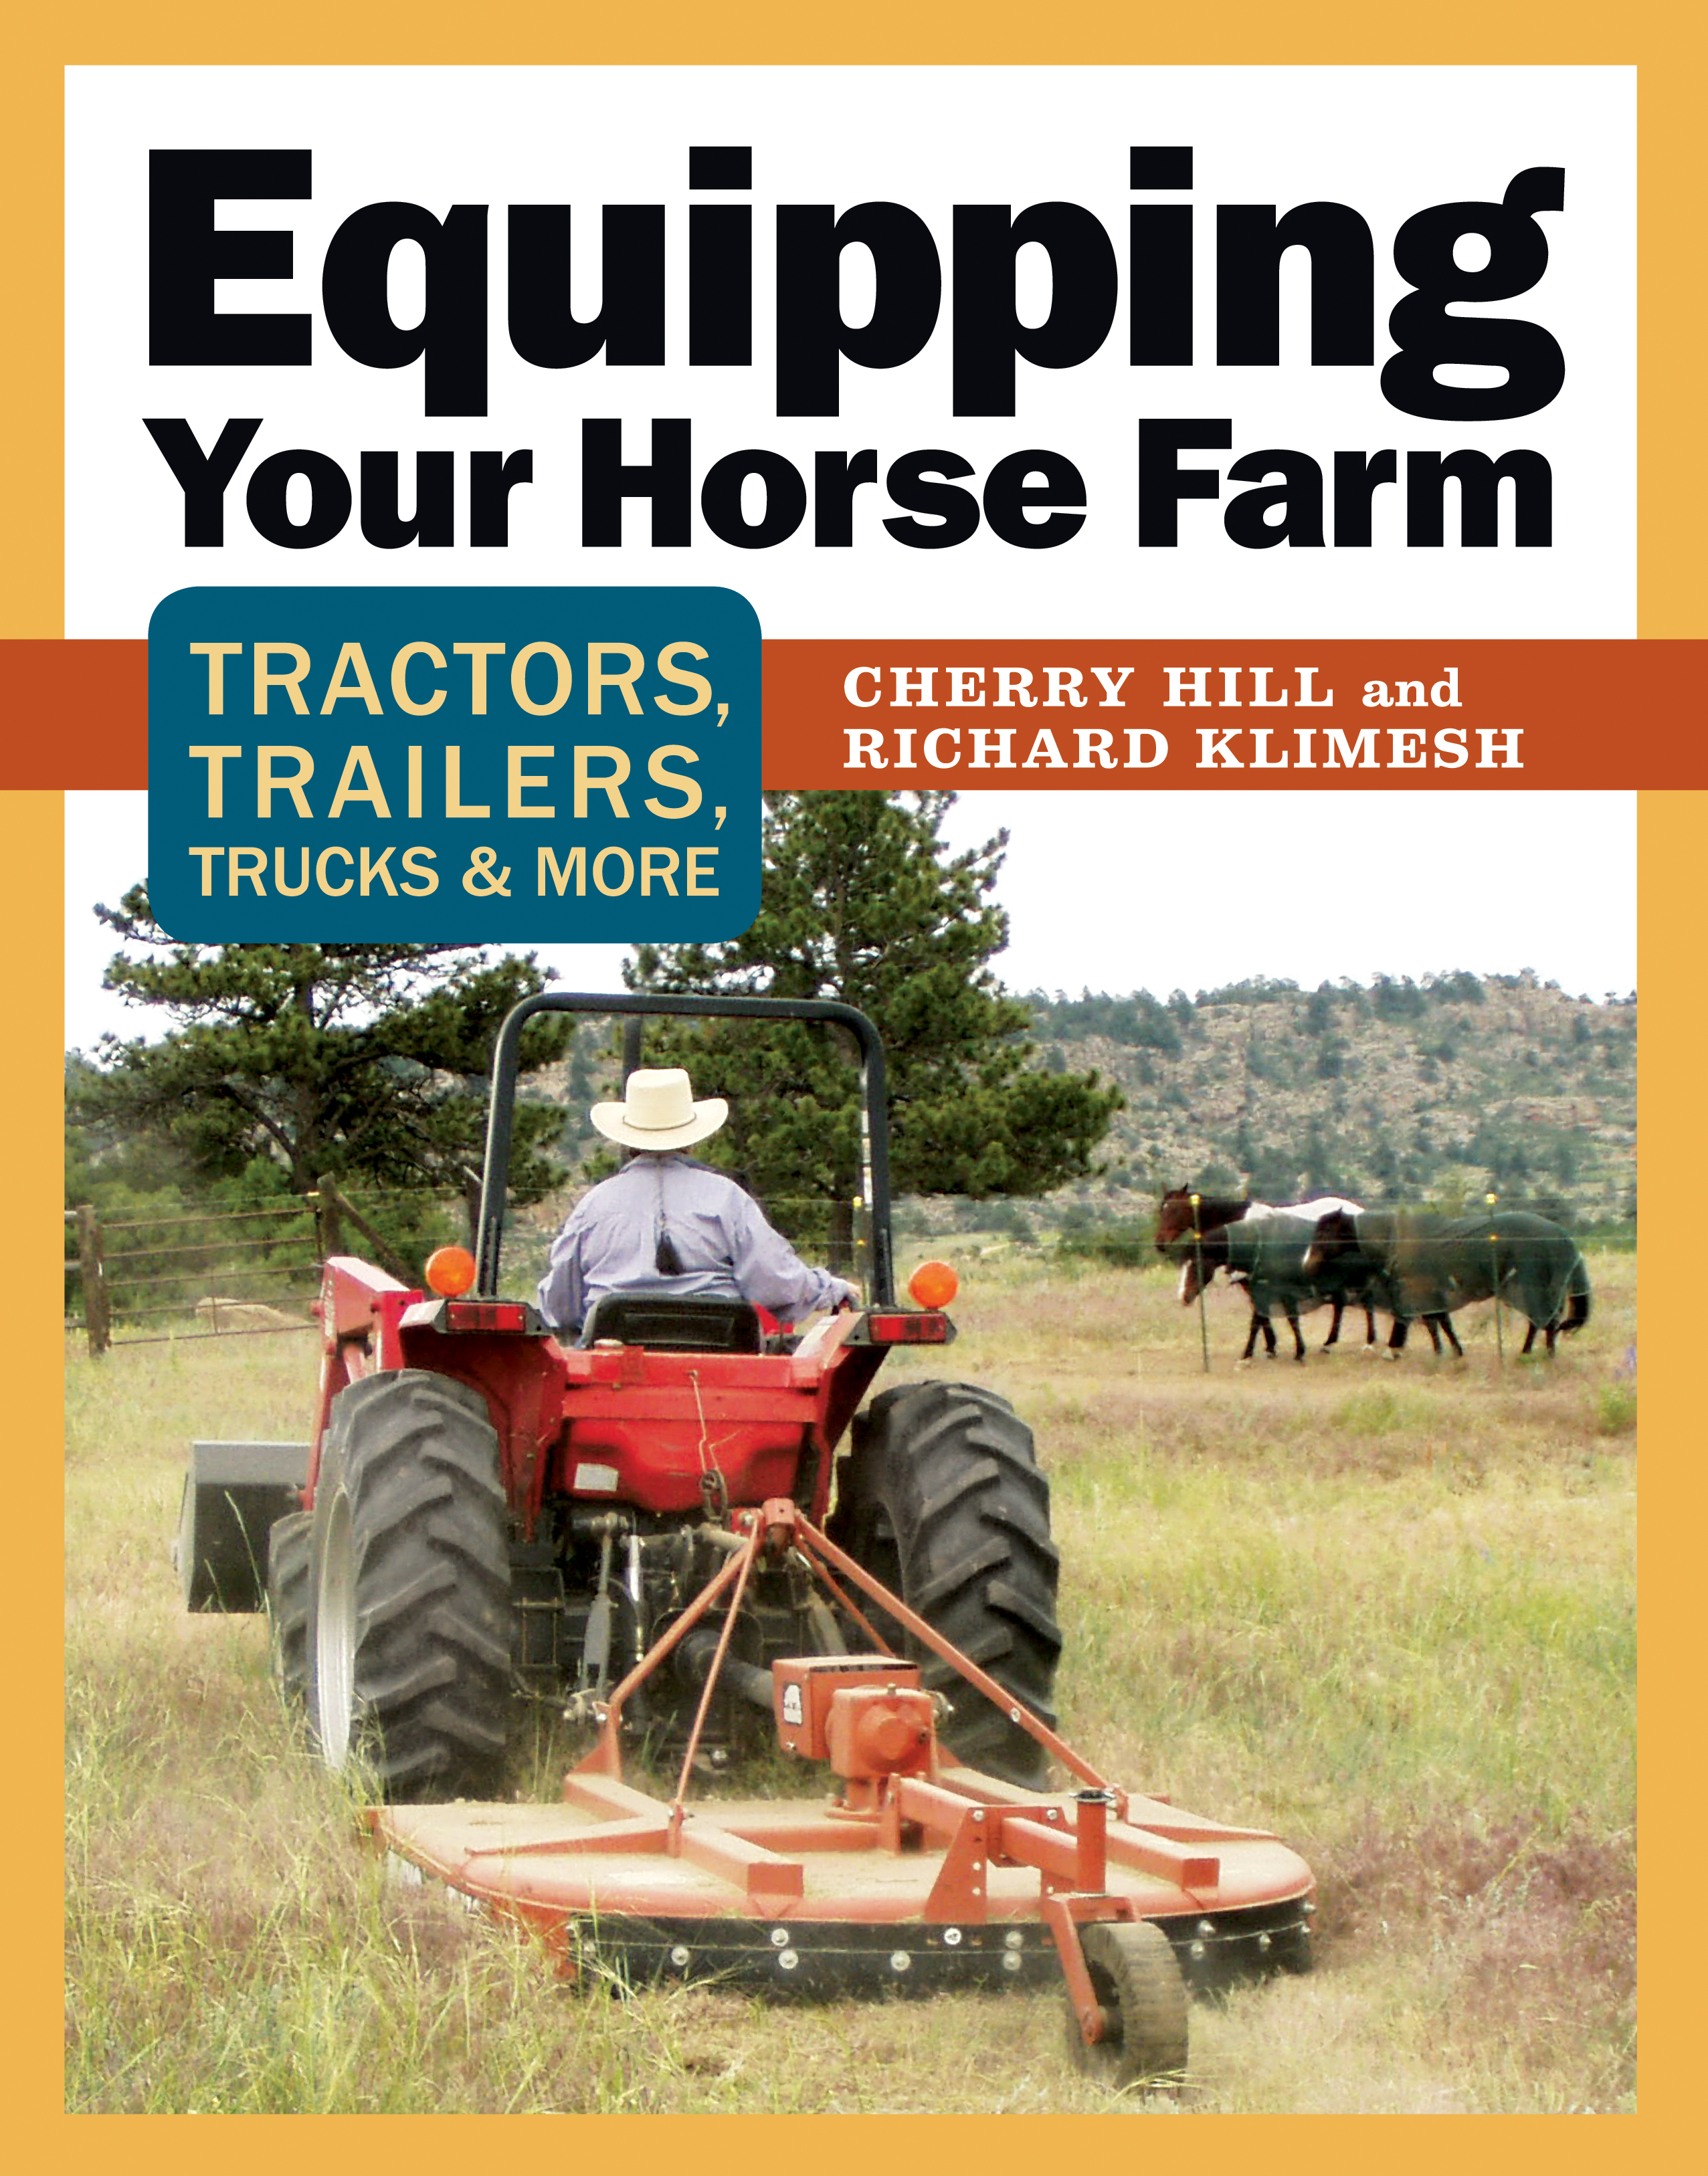 Equipping Your Horse Farm Tractors, Trailers, Trucks & More - Cherry Hill